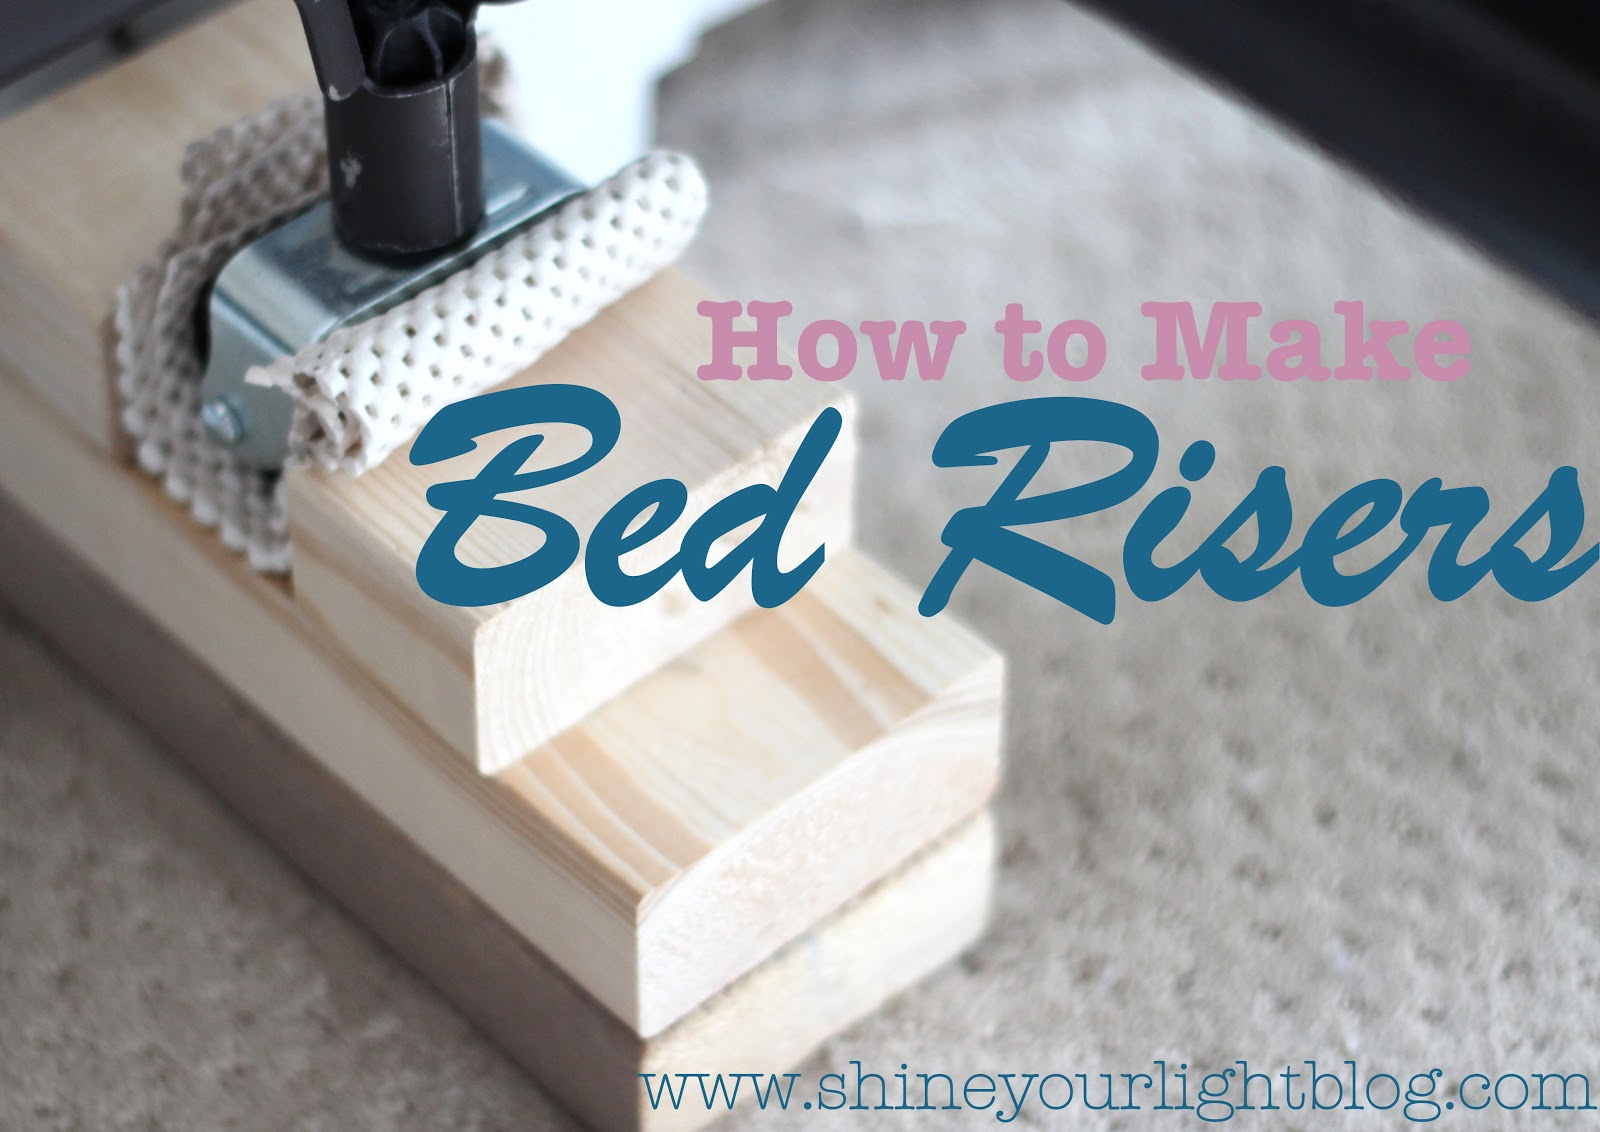 Shine Your Light: How To Make Bed Risers